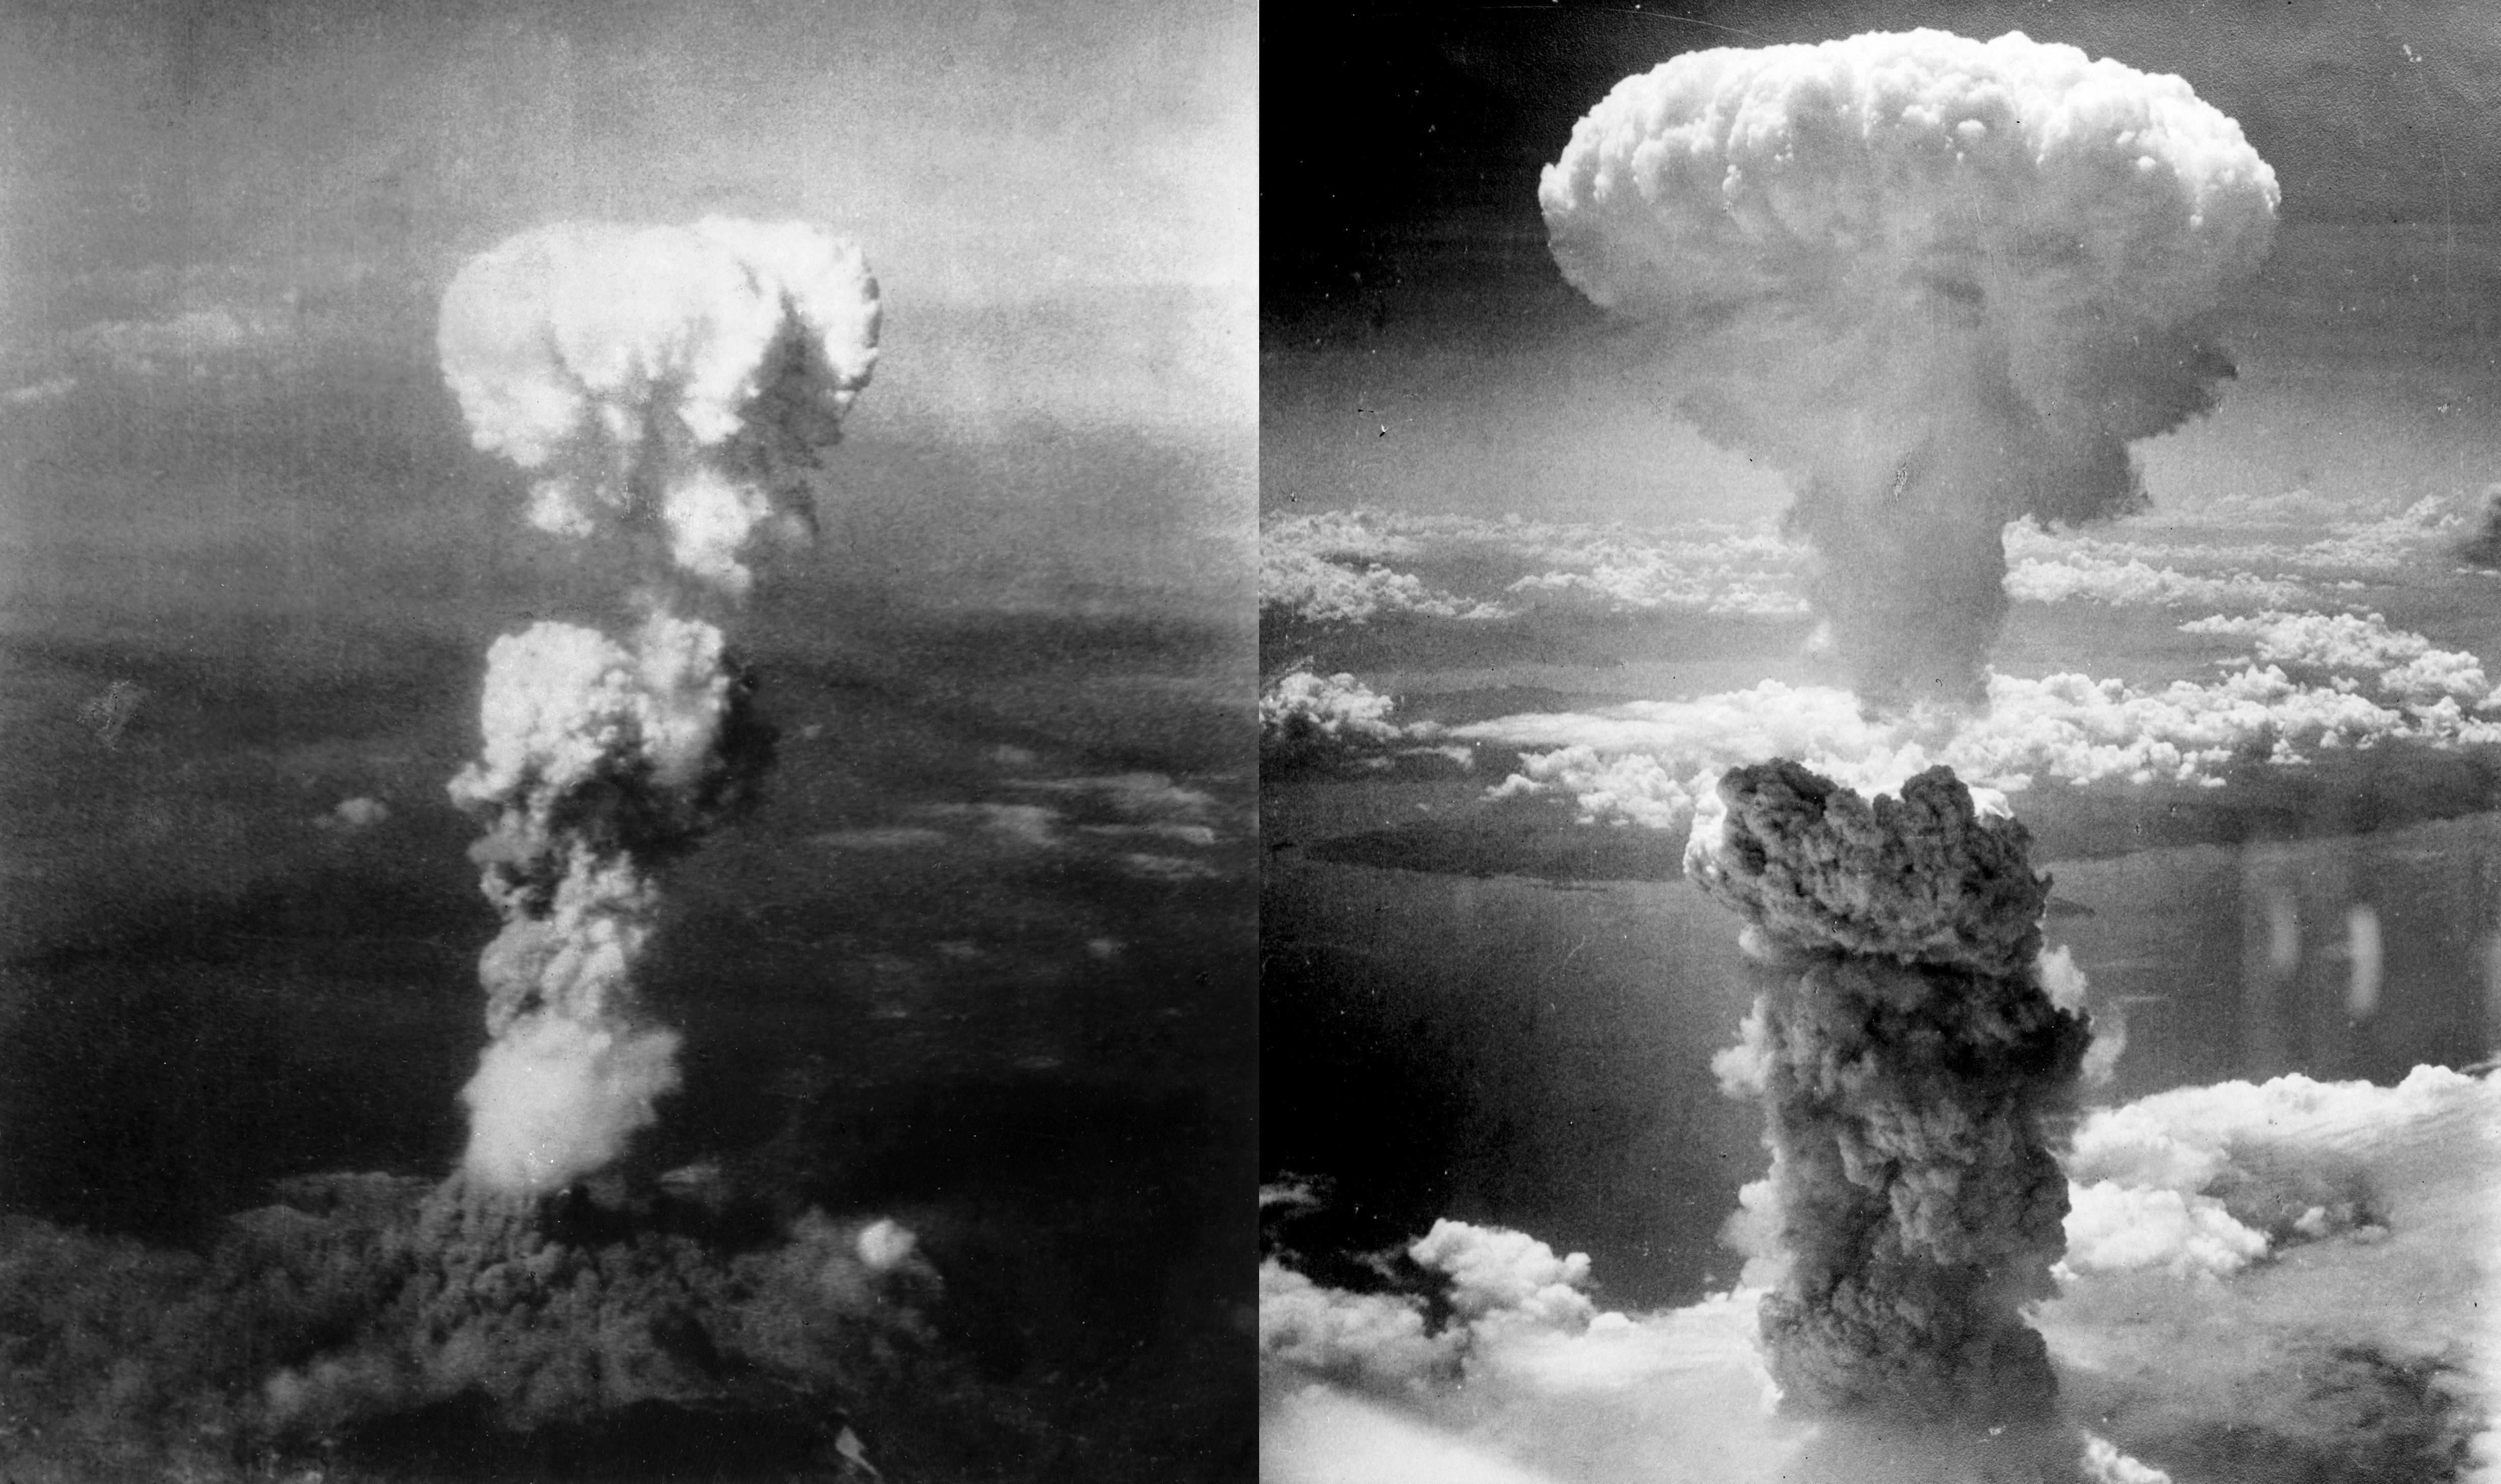 End Game The Hiroshima Left And Nagasaki Bombs Dropped By B29